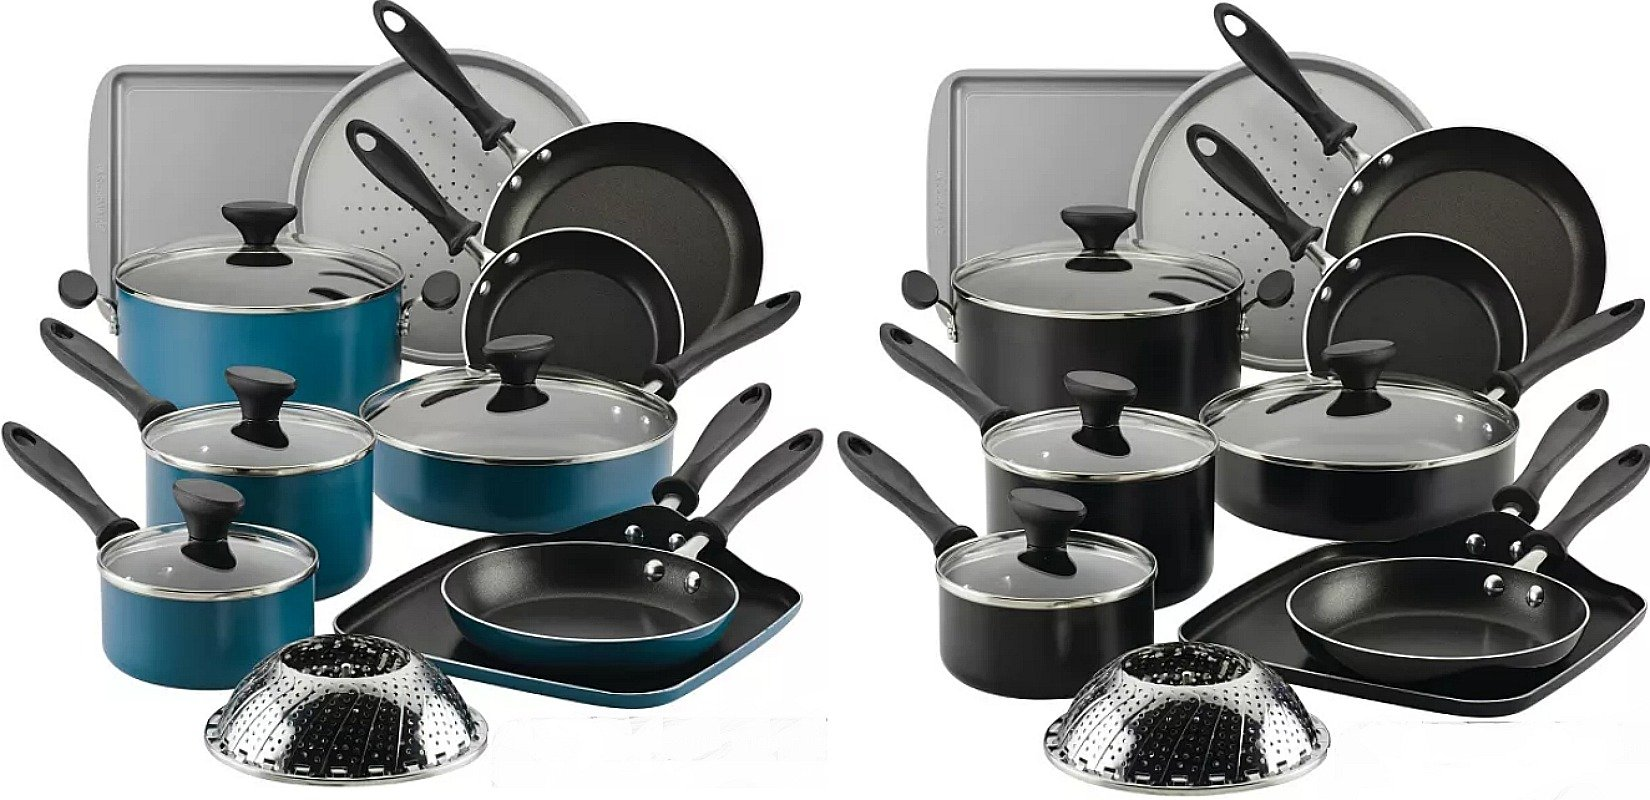 Farberware 21 Piece Nonstick Cookware ONLY $49.99 – Ships FREE (Reg $110) *EXPIRED*